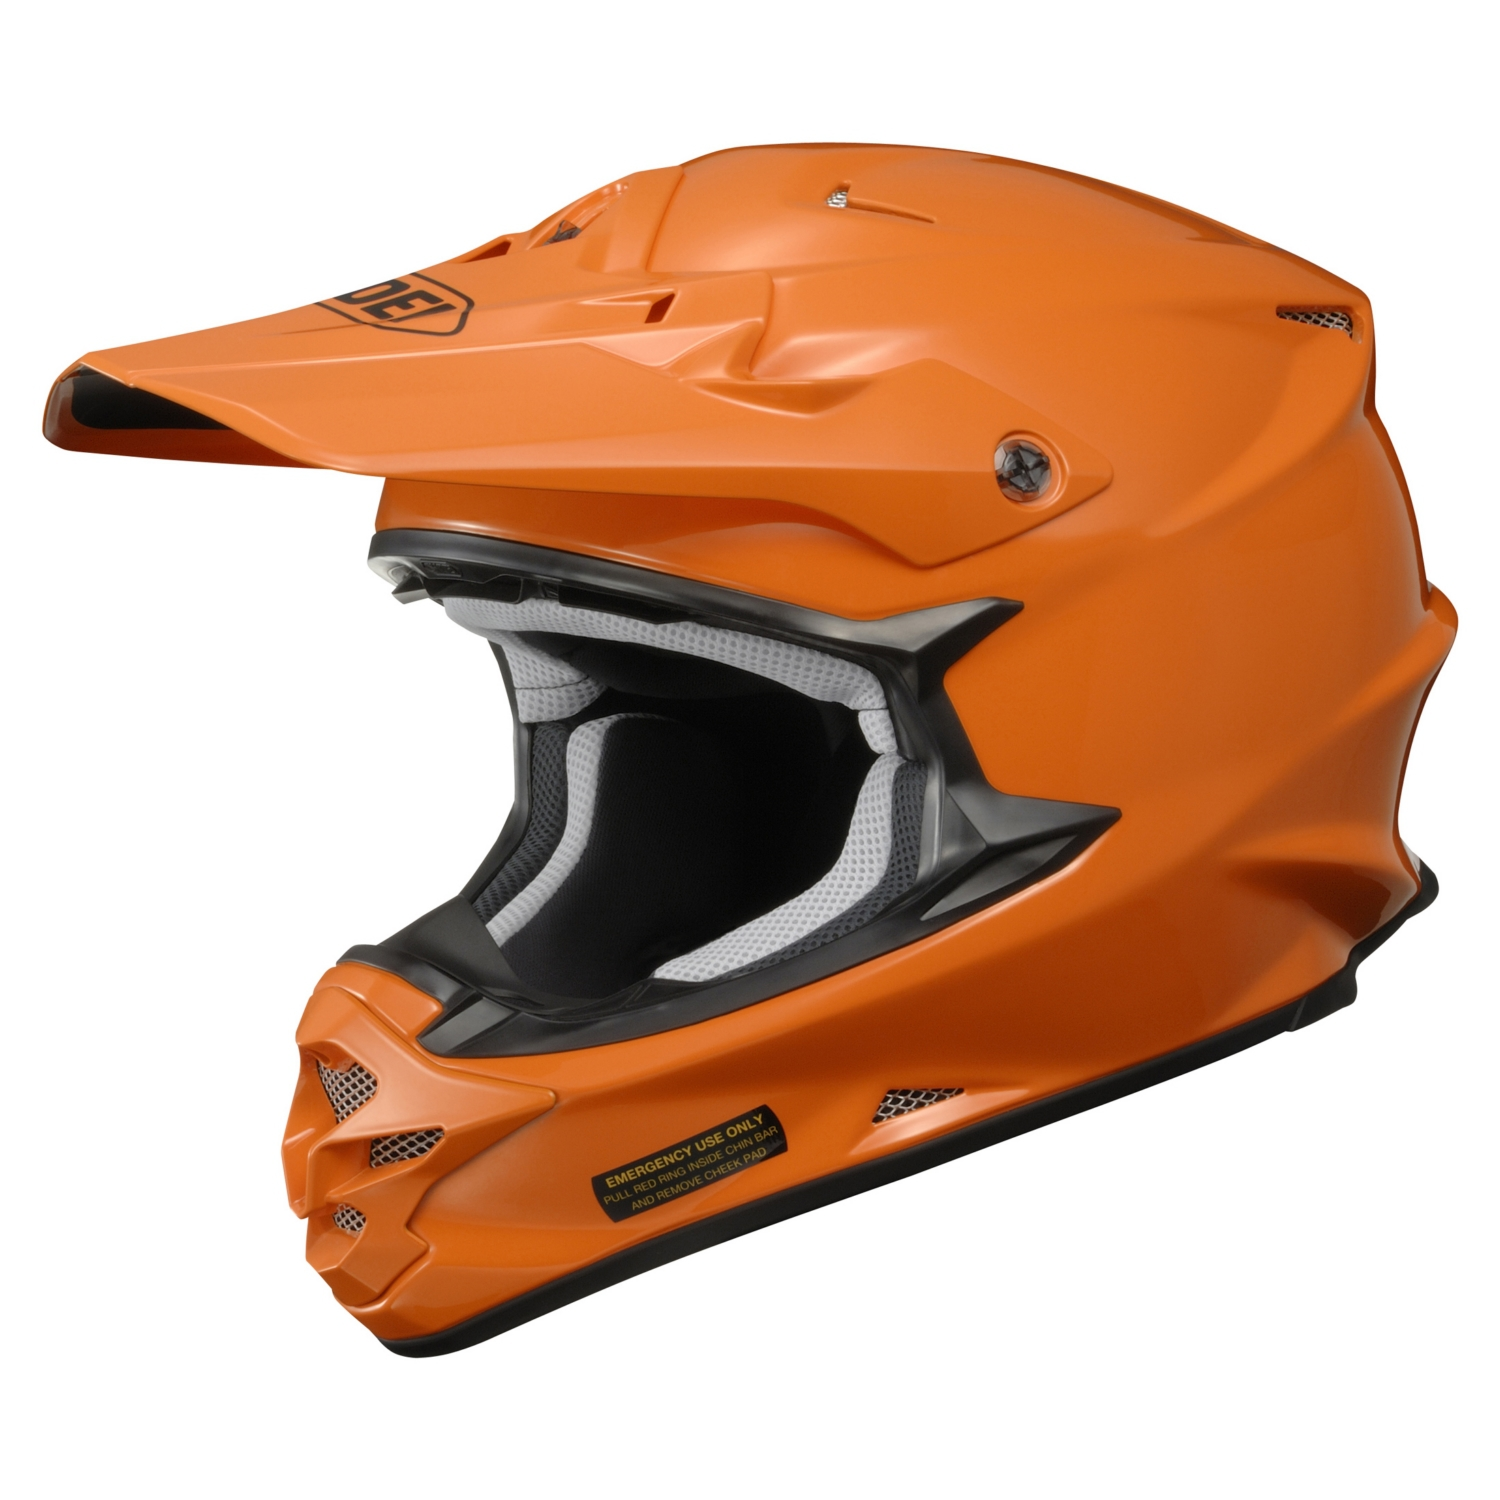 SHOEI Solid VFX-W Off-Road Helmet No Lens Available